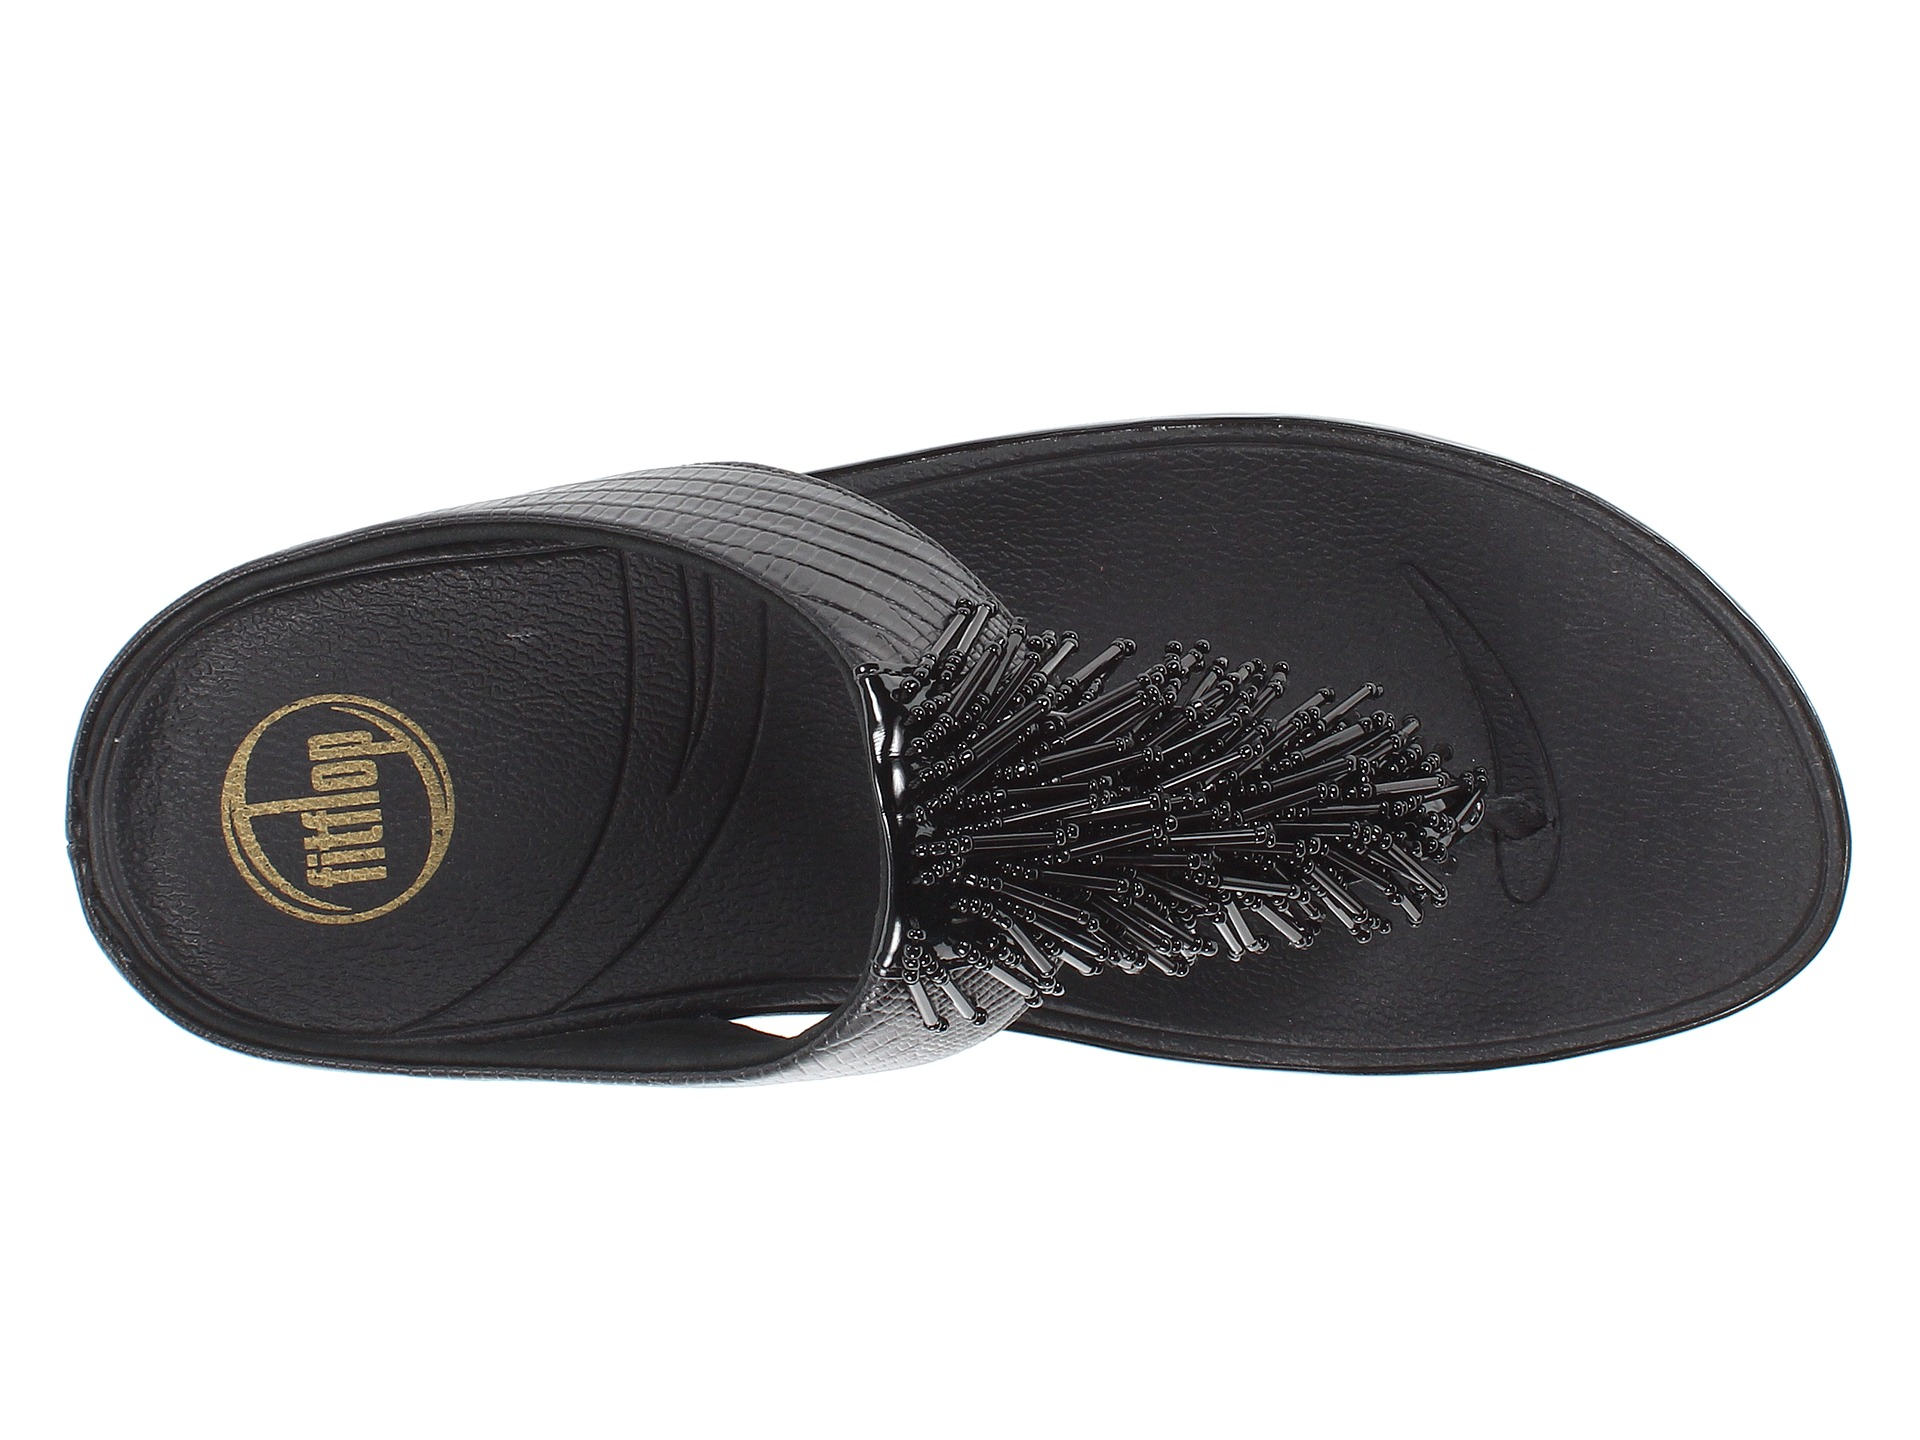 cha cha fitflop on clearance in usa